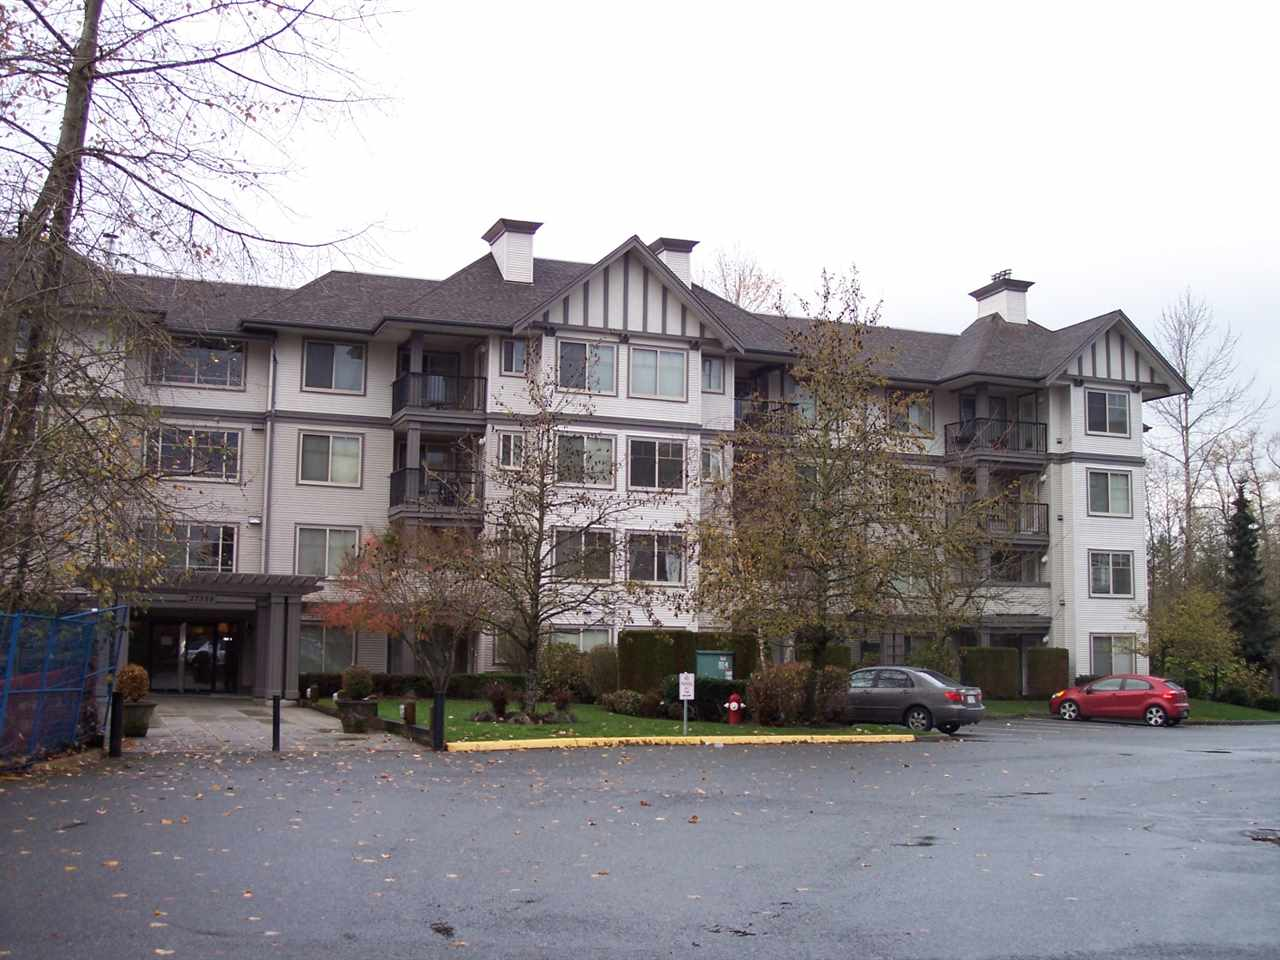 "Main Photo: 136 27358 32 Avenue in Langley: Aldergrove Langley Condo for sale in ""Willowcreek Estates 3"" : MLS®# R2123878"